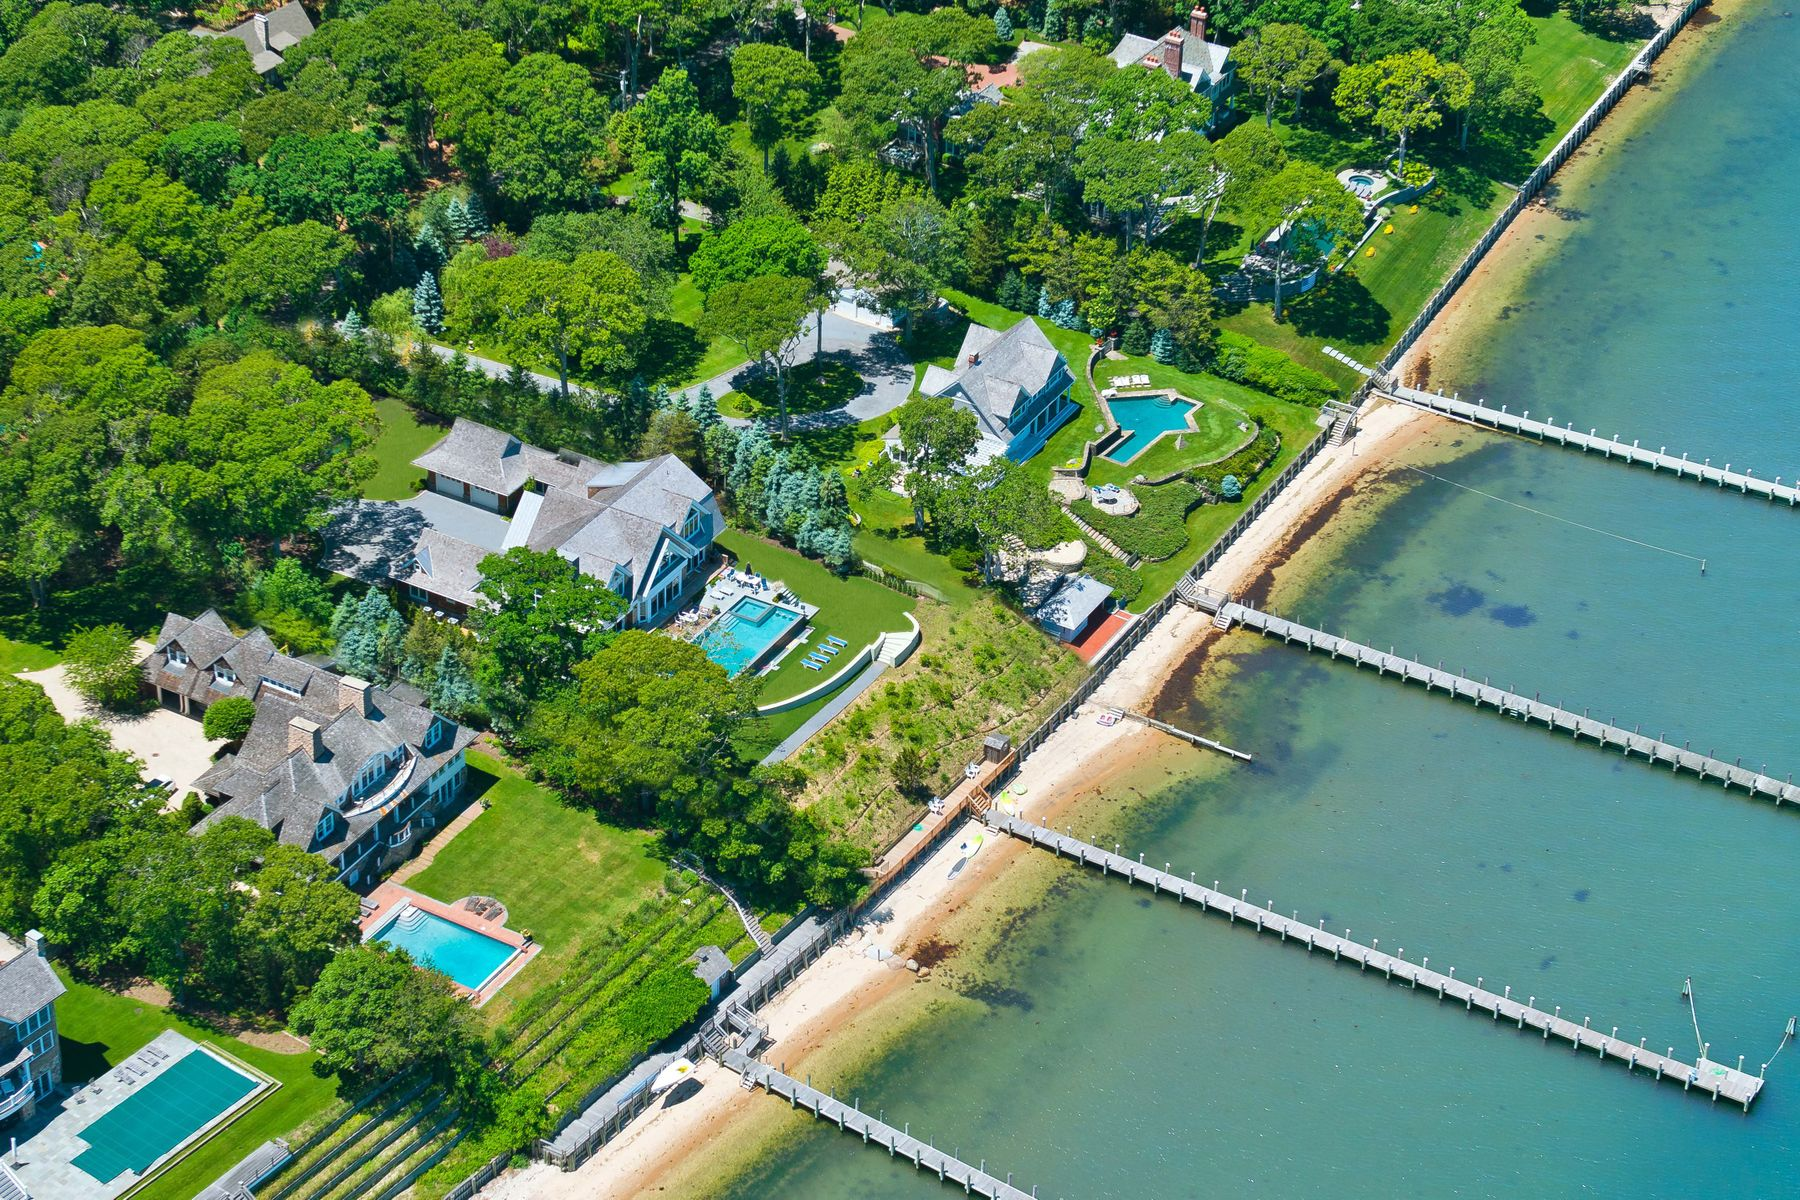 Single Family Homes für Verkauf beim Sleek New Build with Deep Water Dock 44 Forest Road, Sag Harbor, New York 11963 Vereinigte Staaten